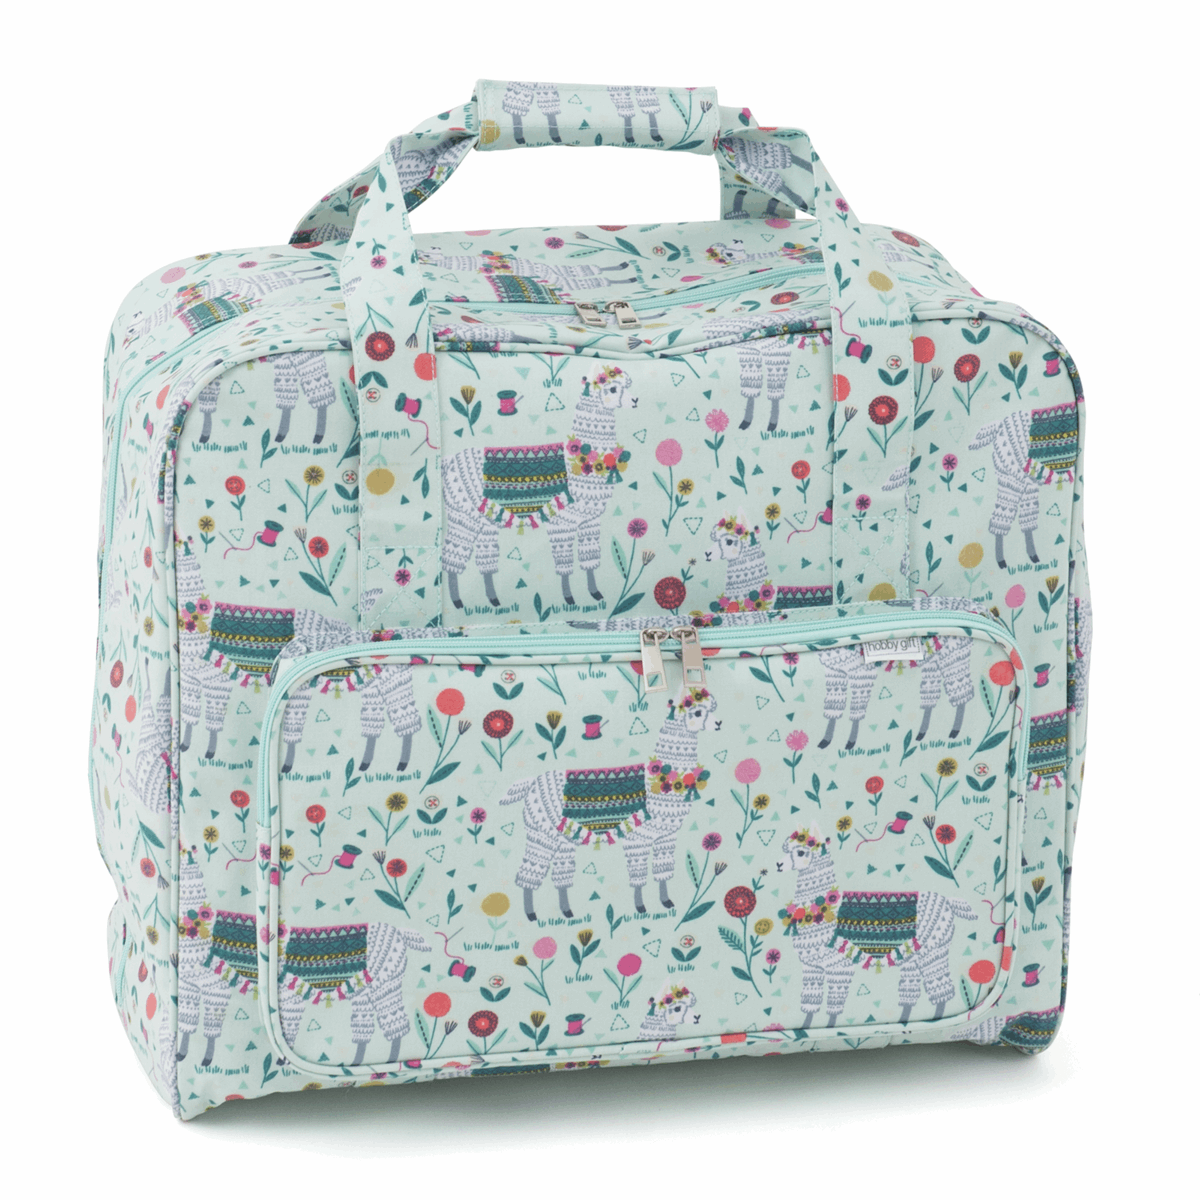 Llama Sewing Machine Bag (Matt PVC)